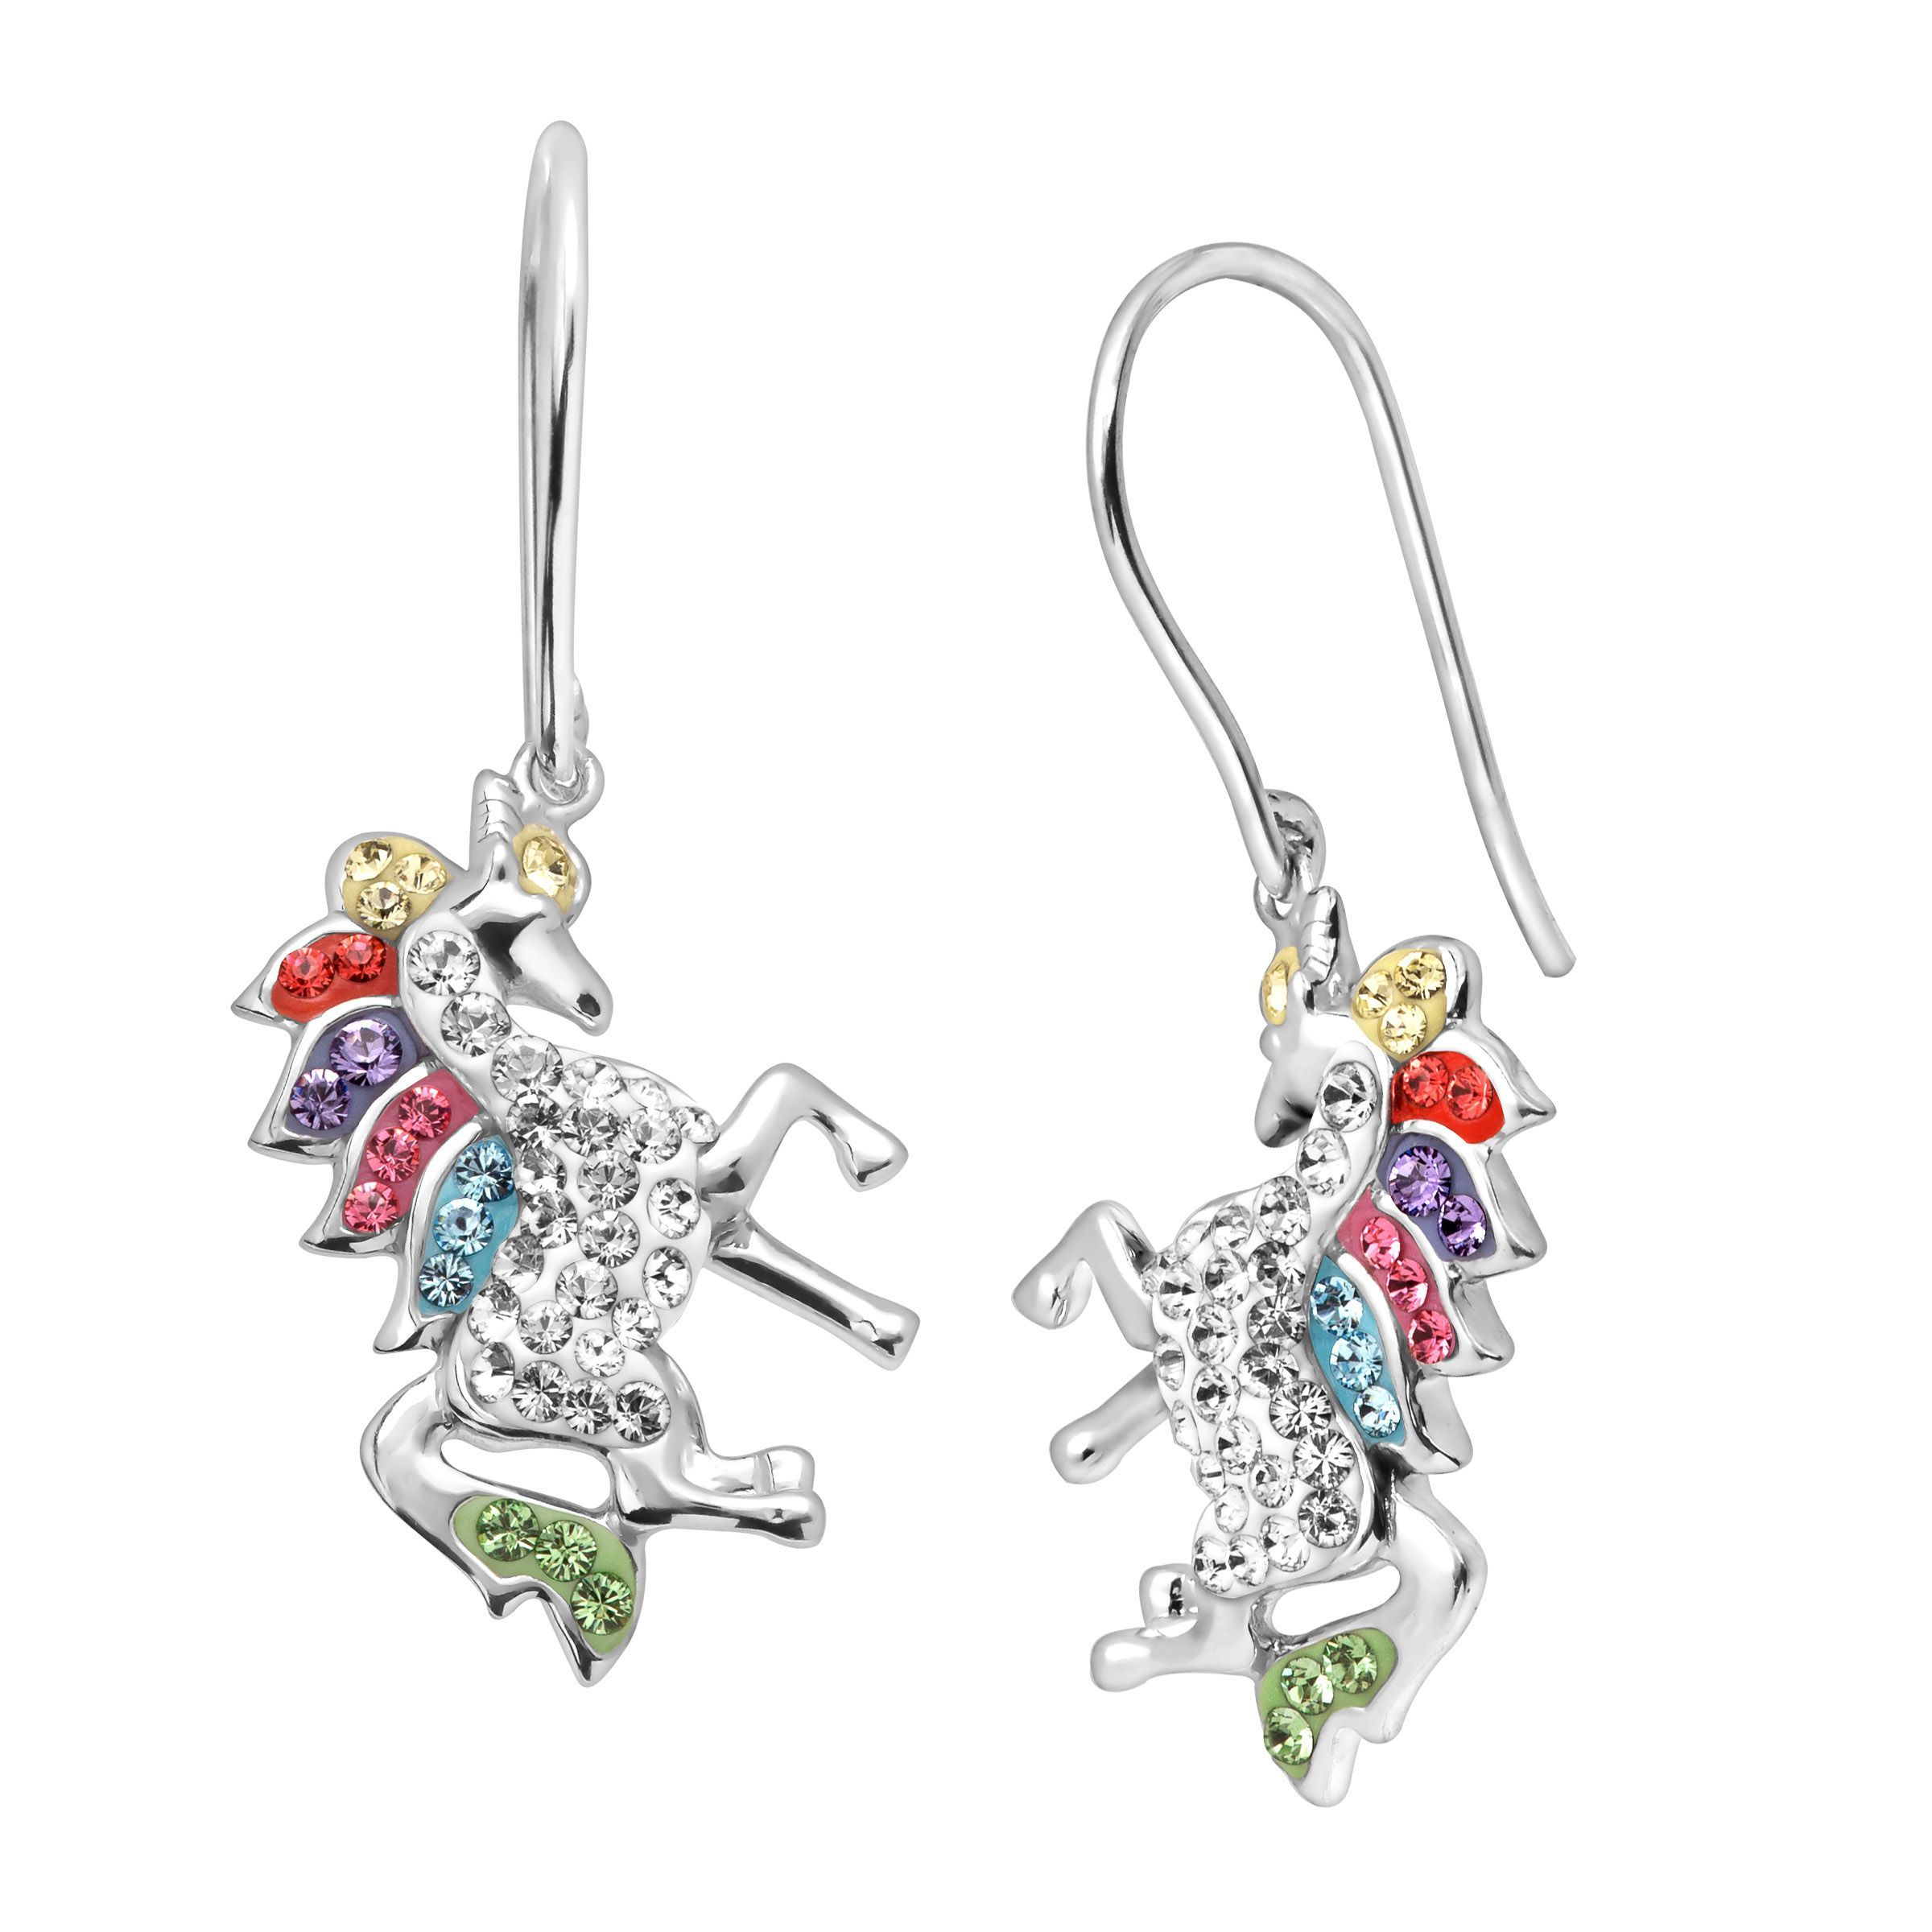 2b94444e2 Crystaluxe Unicorn Drop Earrings with Swarovski Crystals in Sterling Silver